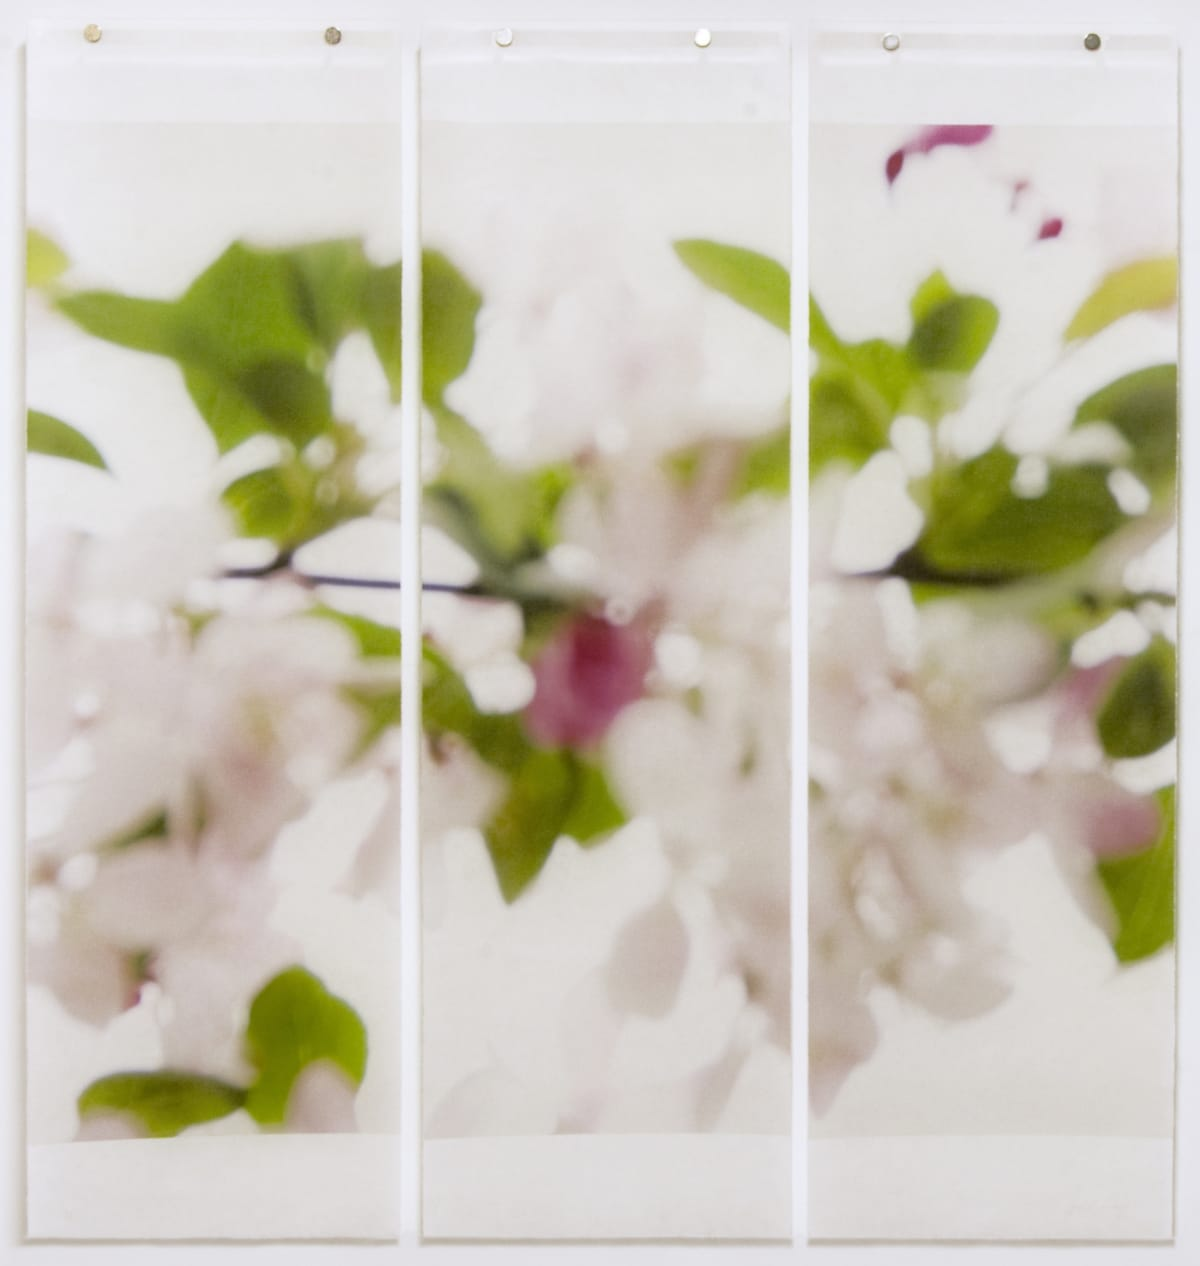 "Jeri Eisenberg's ""Till it's Time to Go"" archival pigment on kozo paper infused with encaustic medium. The work has shades of green, purple and white. The painting resembles a blurred image of petals and leaves."